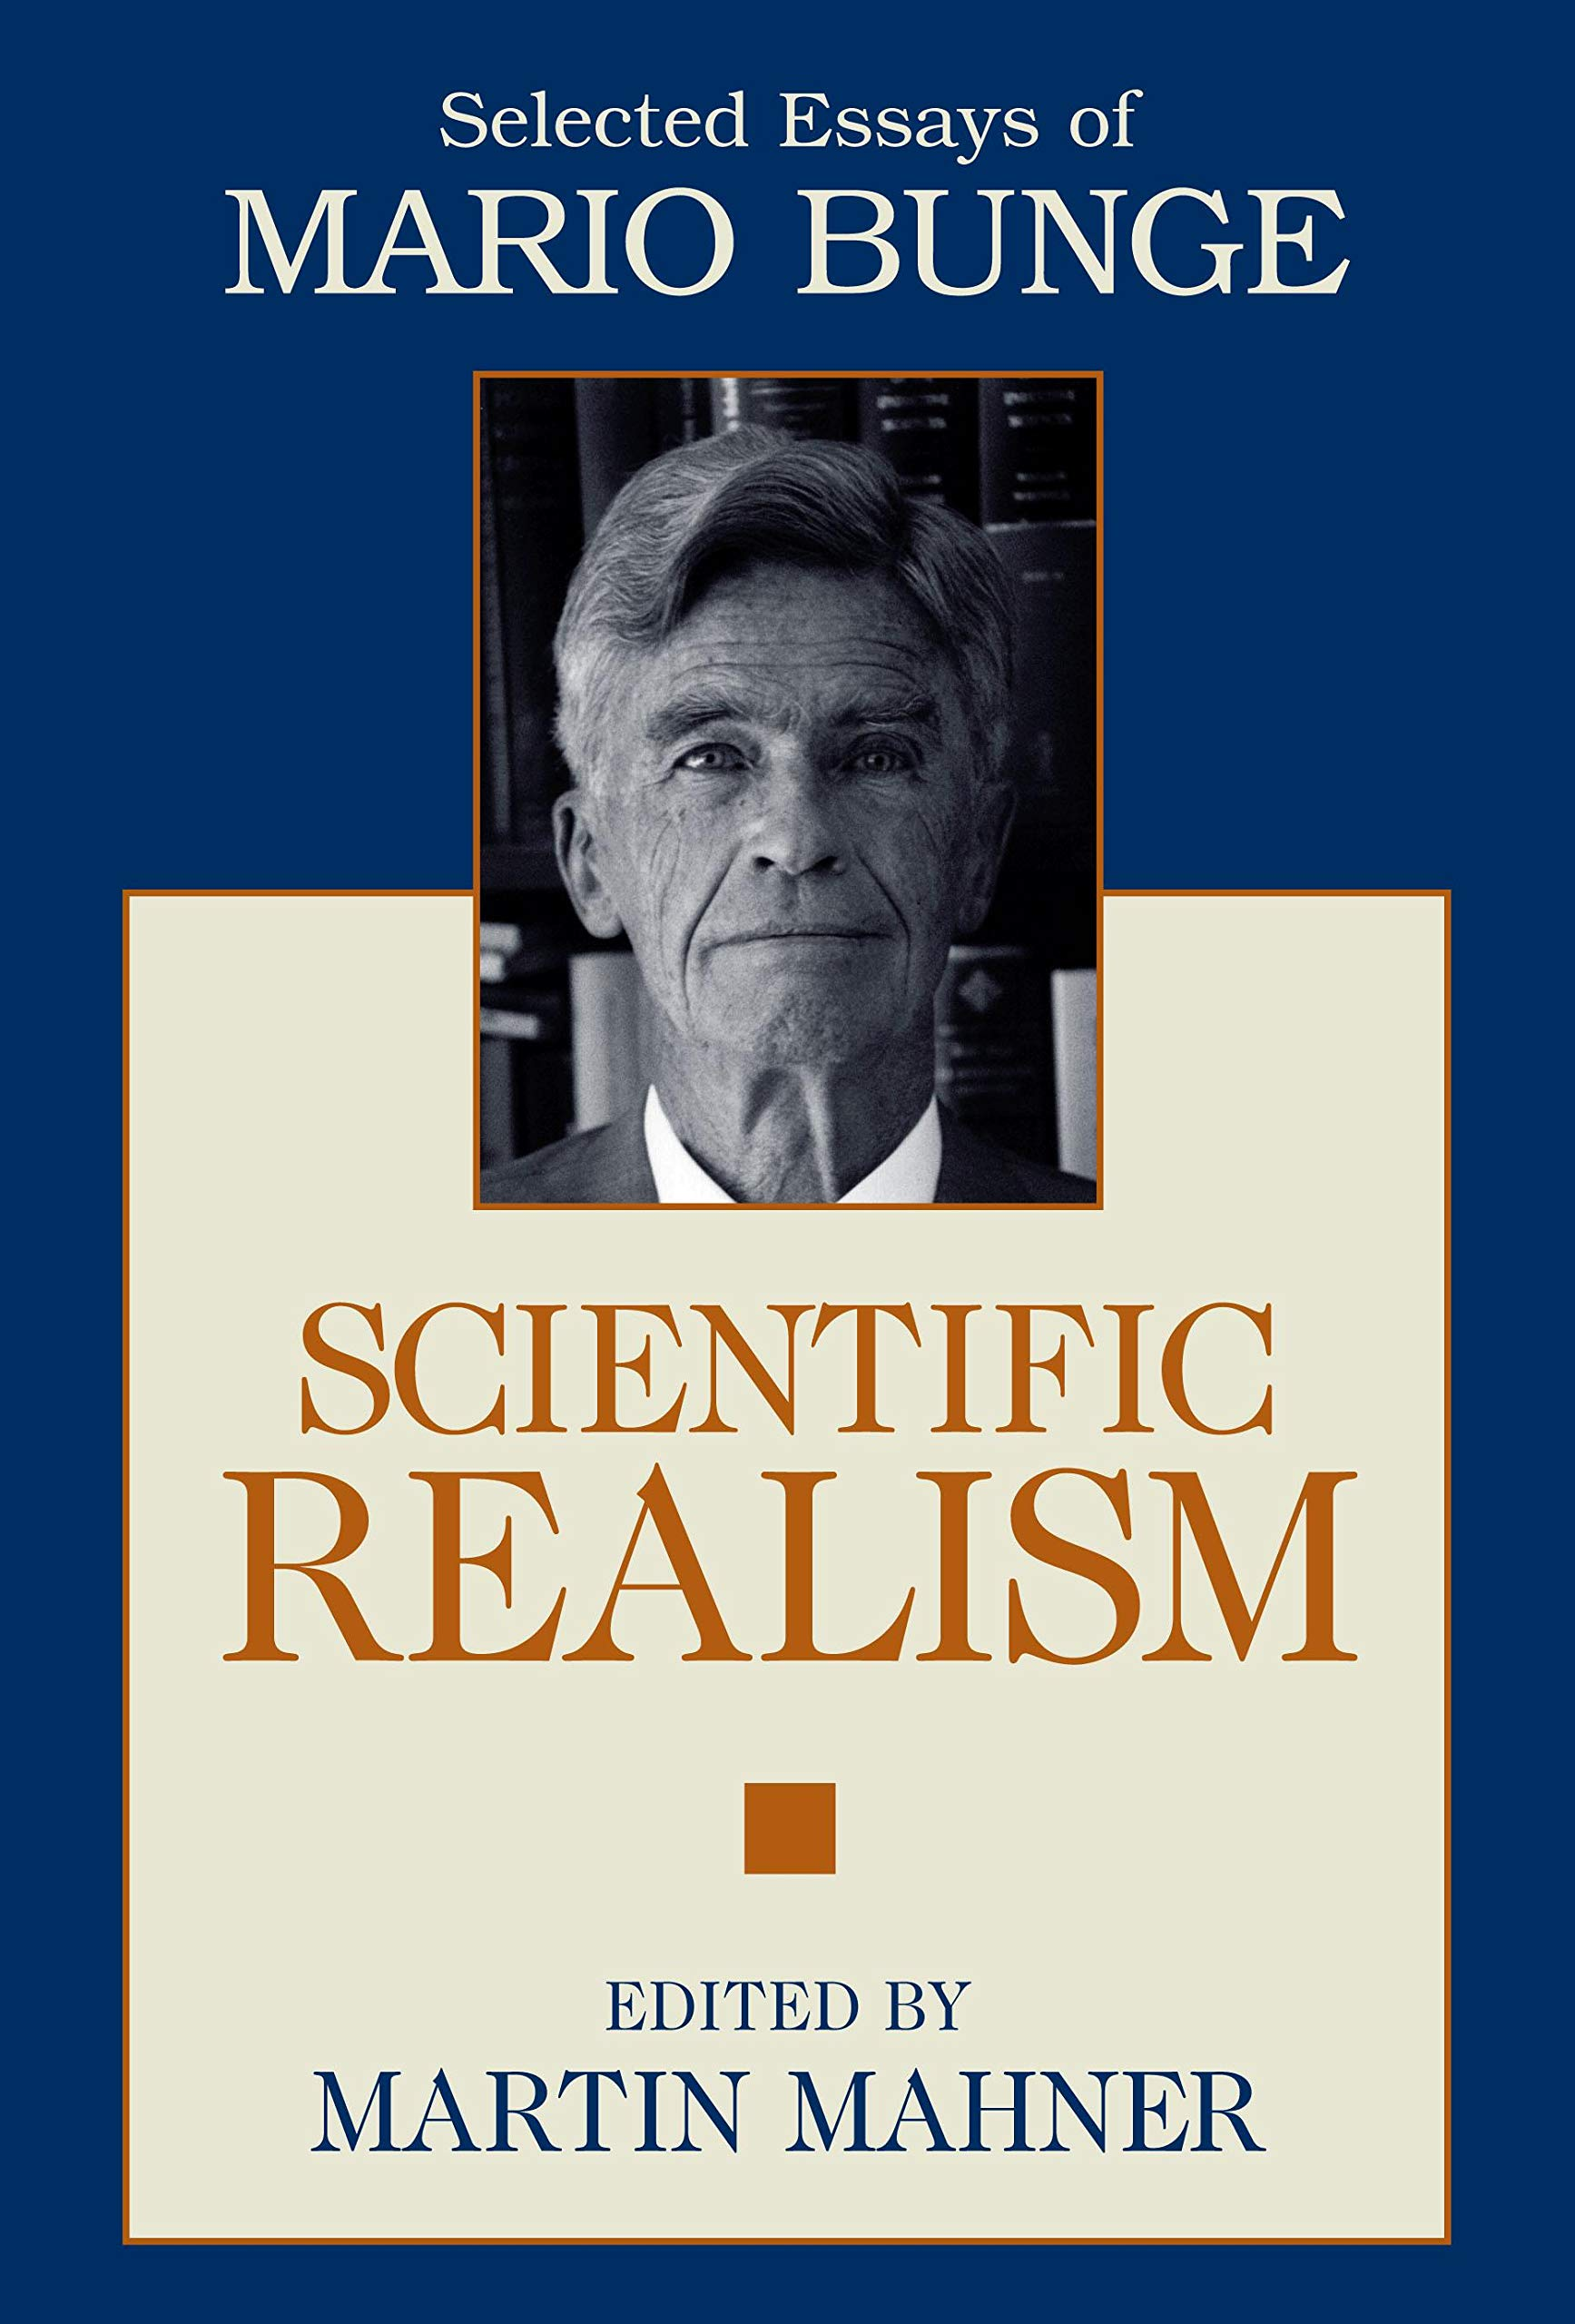 Scientific Realism: Selected Essays of Mario Bunge: Mario Bunge, Martin  Mahner: 9781573928922: Amazon.com: Books